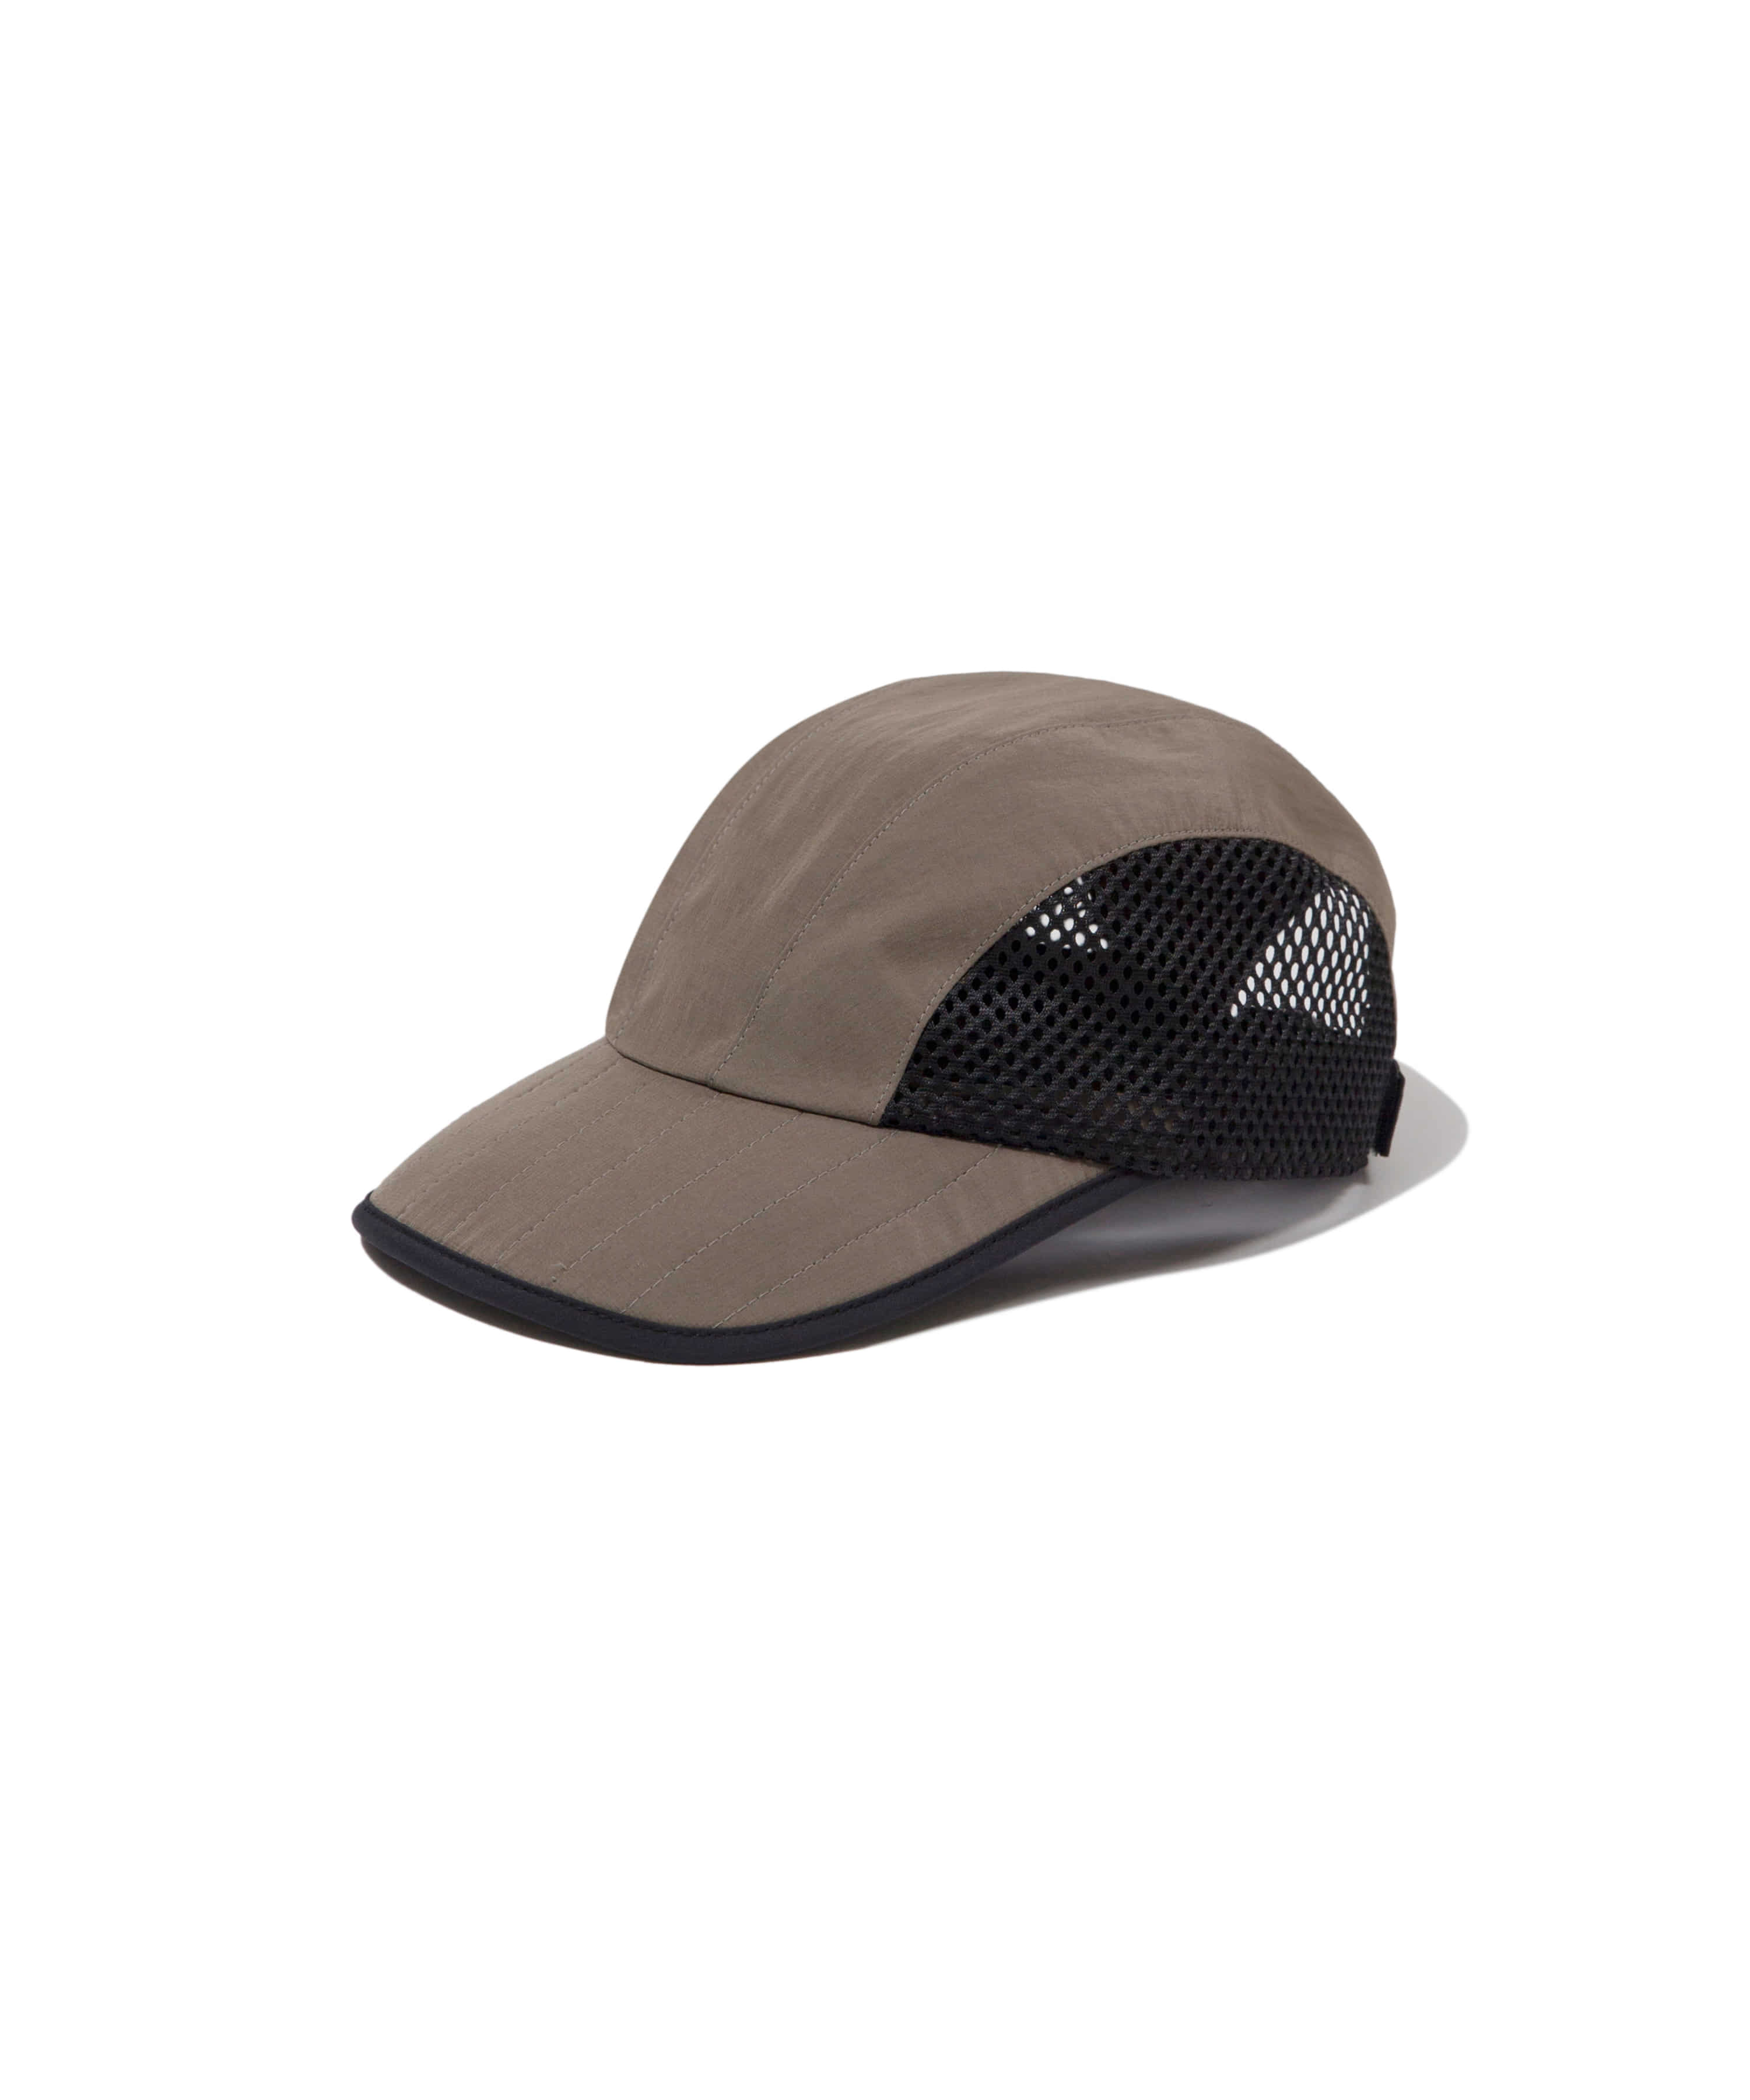 [추석특가50%] RIPSTOP CAMP CAP BROWN